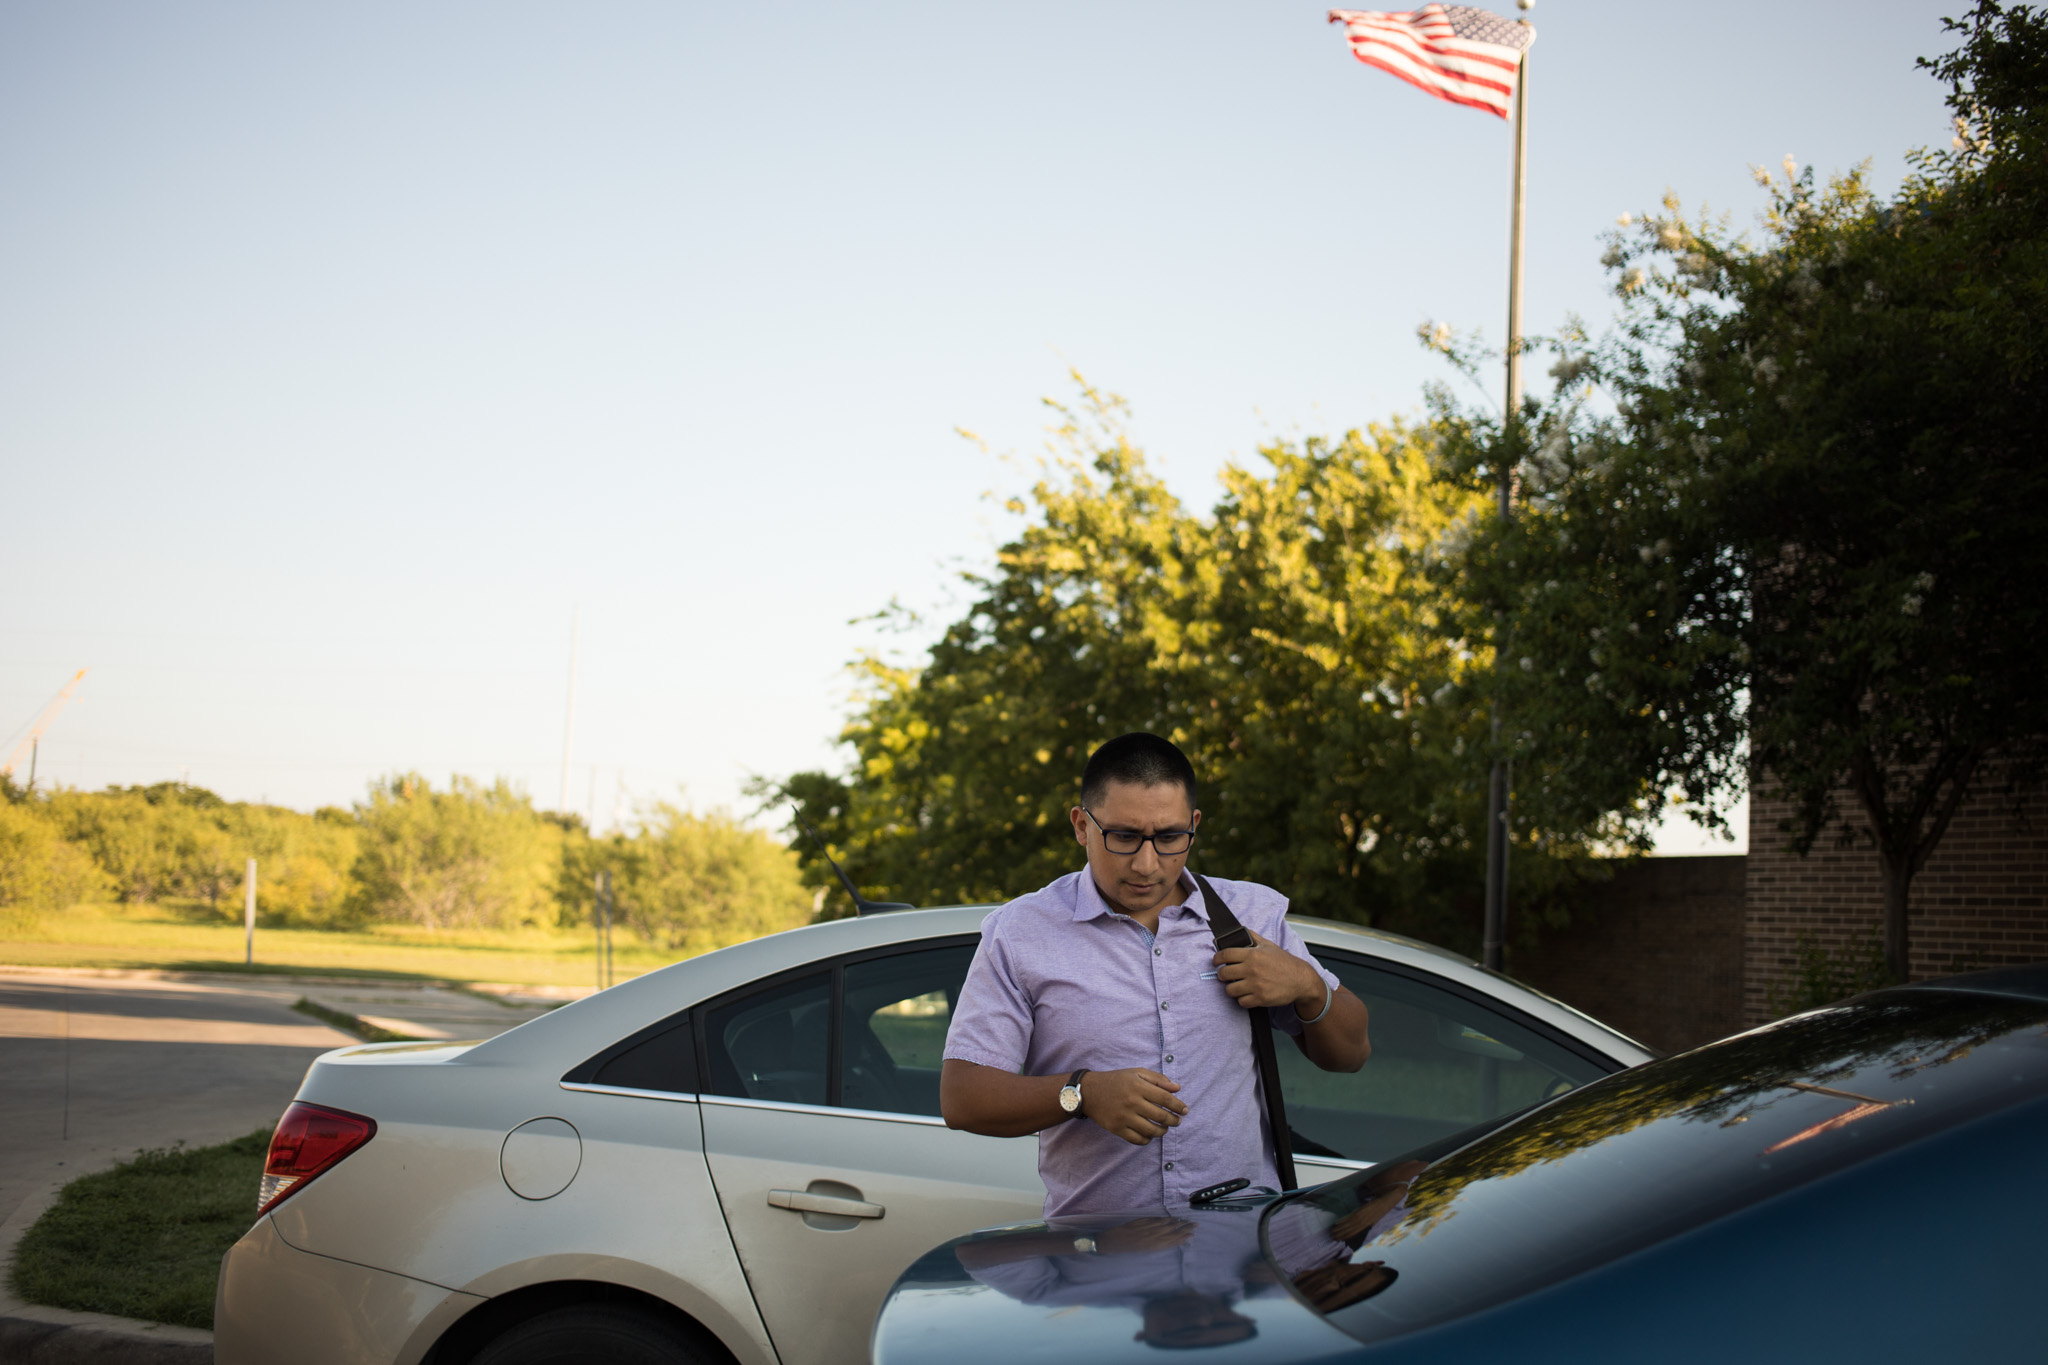 Diego Mancha Dominguez exits his car to walk toward the post office where he will send his information for his DACA renewal.